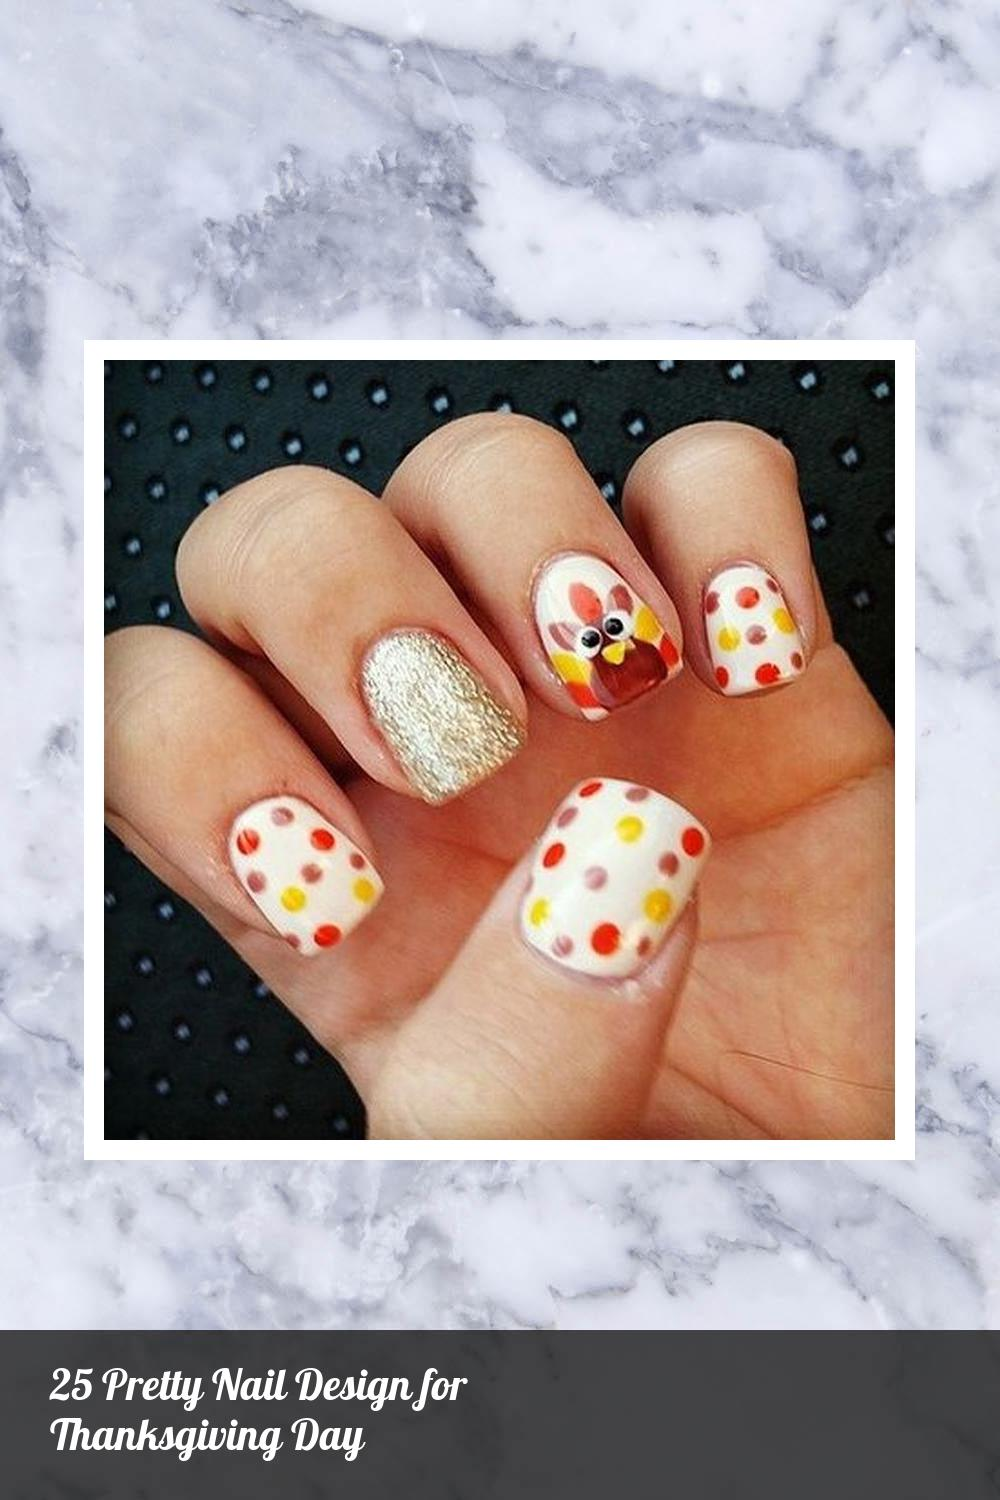 25 Pretty Nail Design for Thanksgiving Day 3